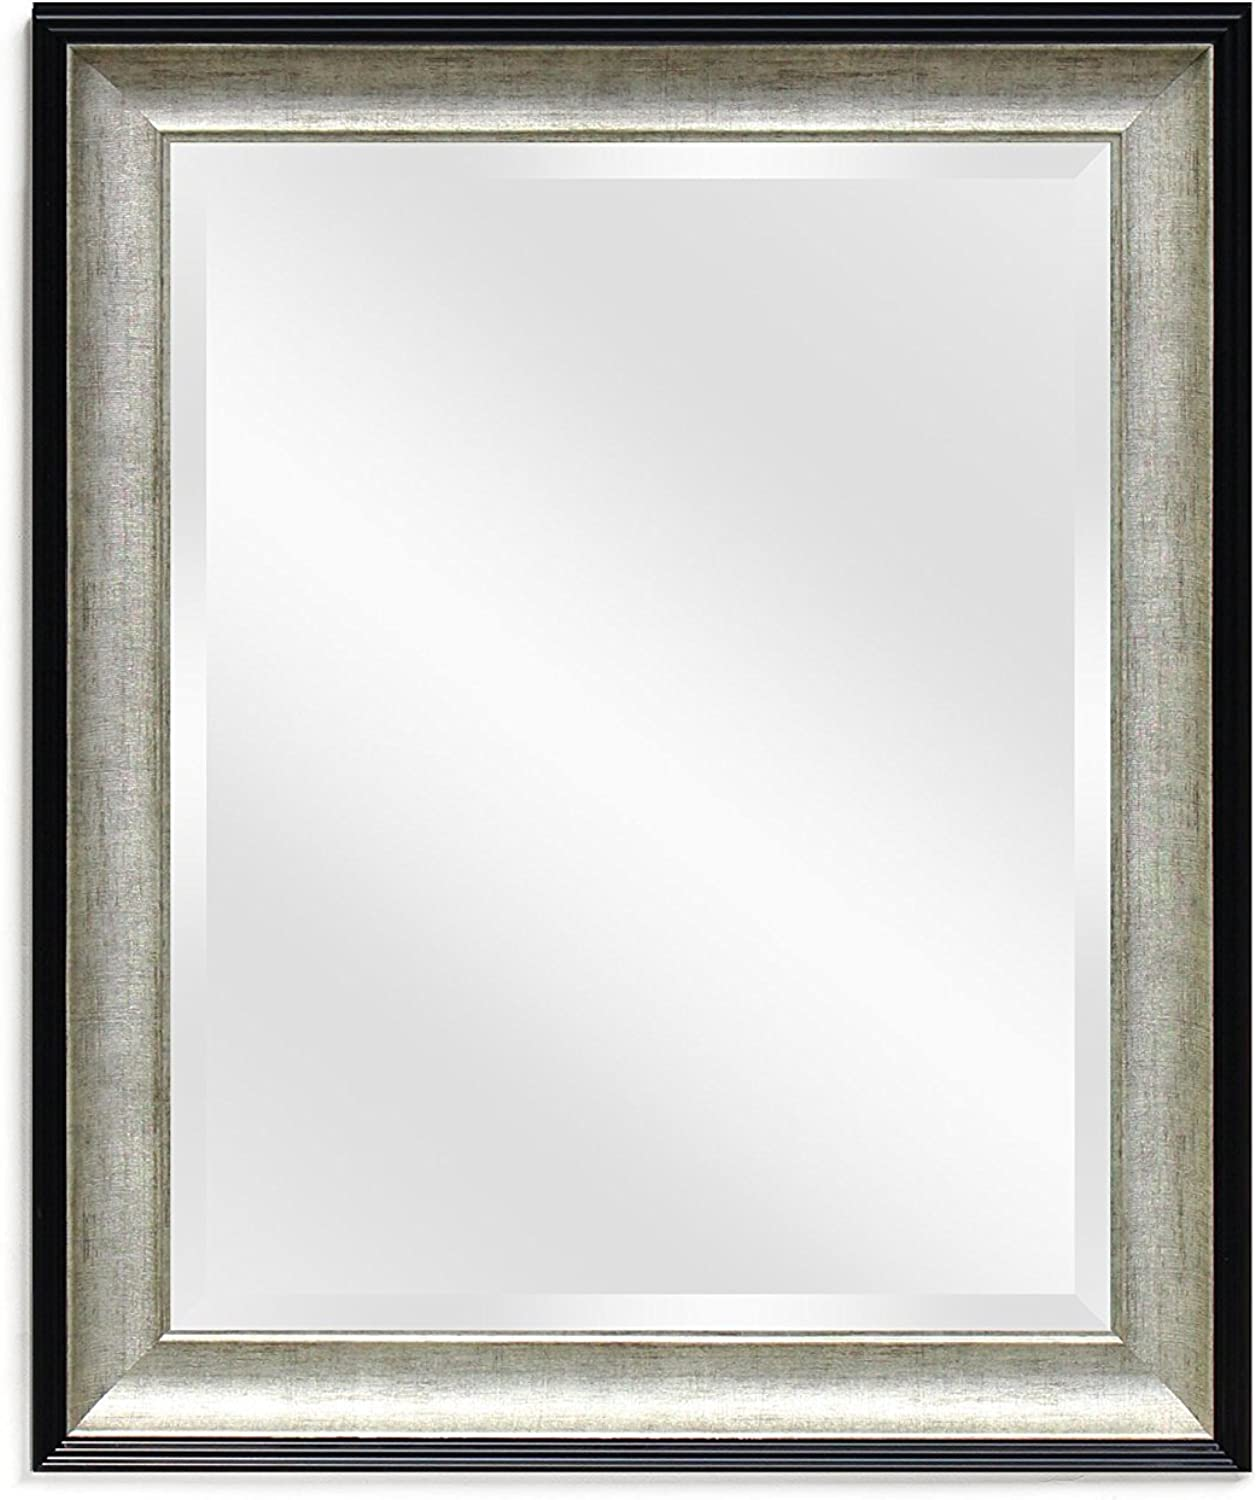 Wall Beveled Black Mirror Framed - Bedroom or Bathroom Rectangular Frame Hangs Horizontal & greenical by EcoHome (26x32, Black Silver)